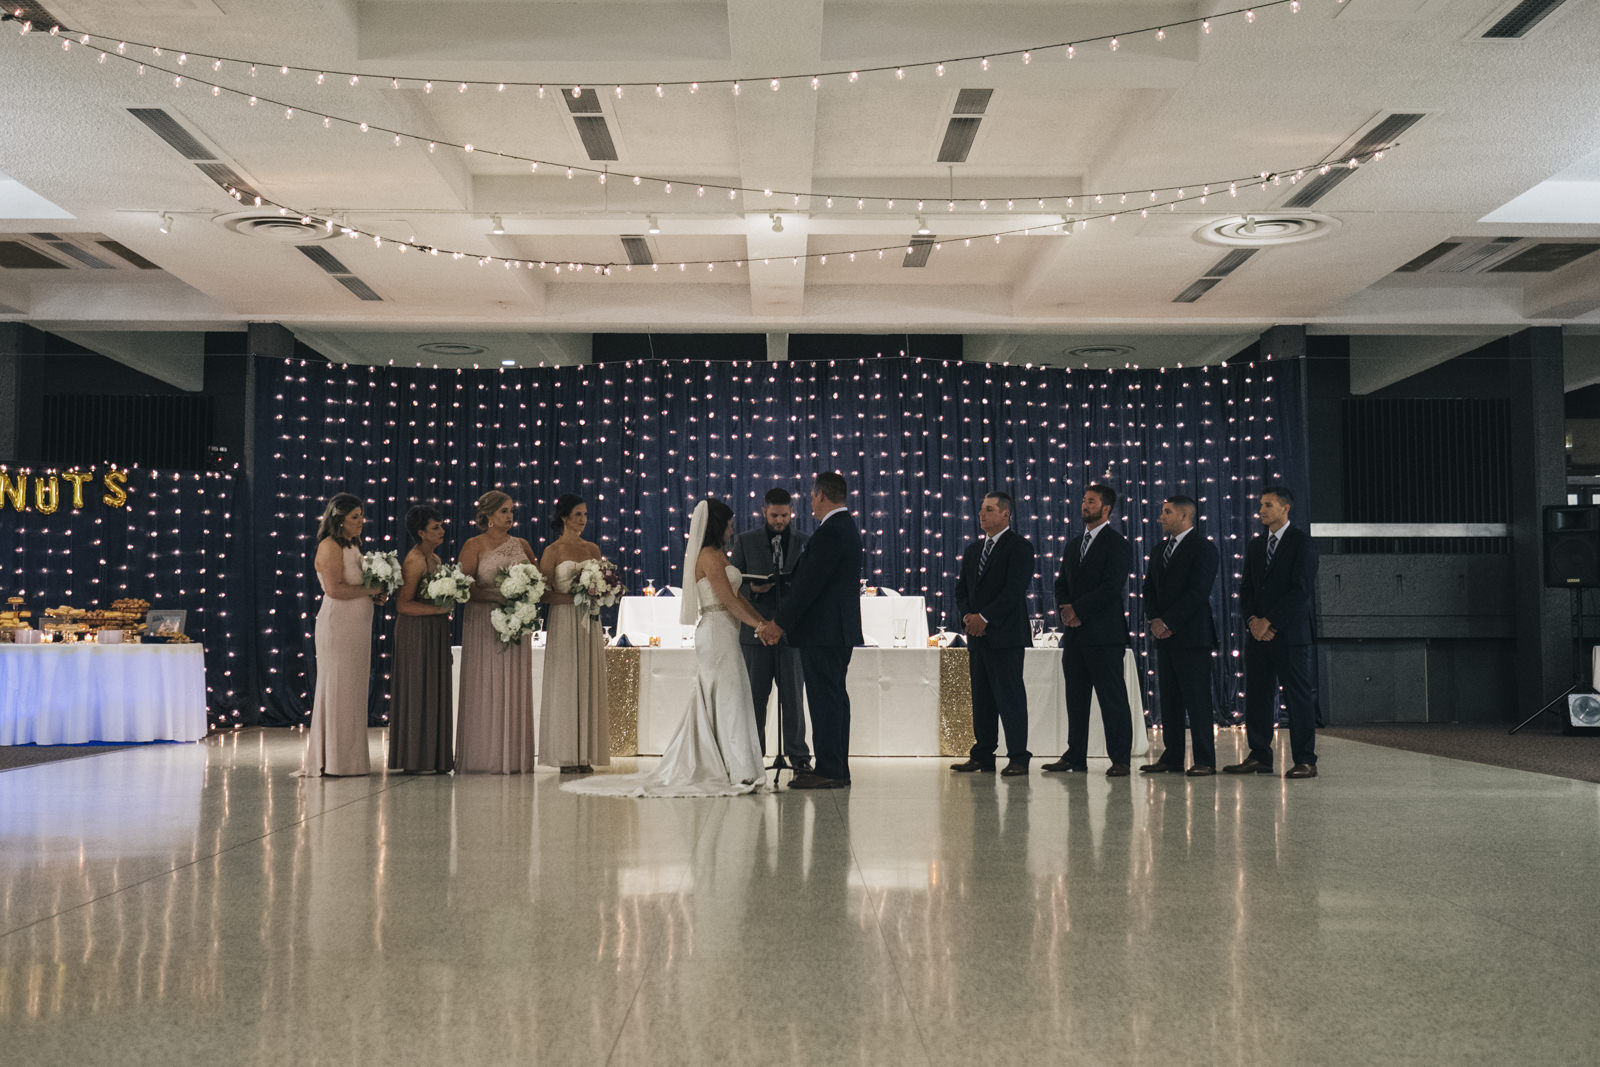 Picture of the wedding ceremony in the Stranahan Theatre in Toledo, Ohio.